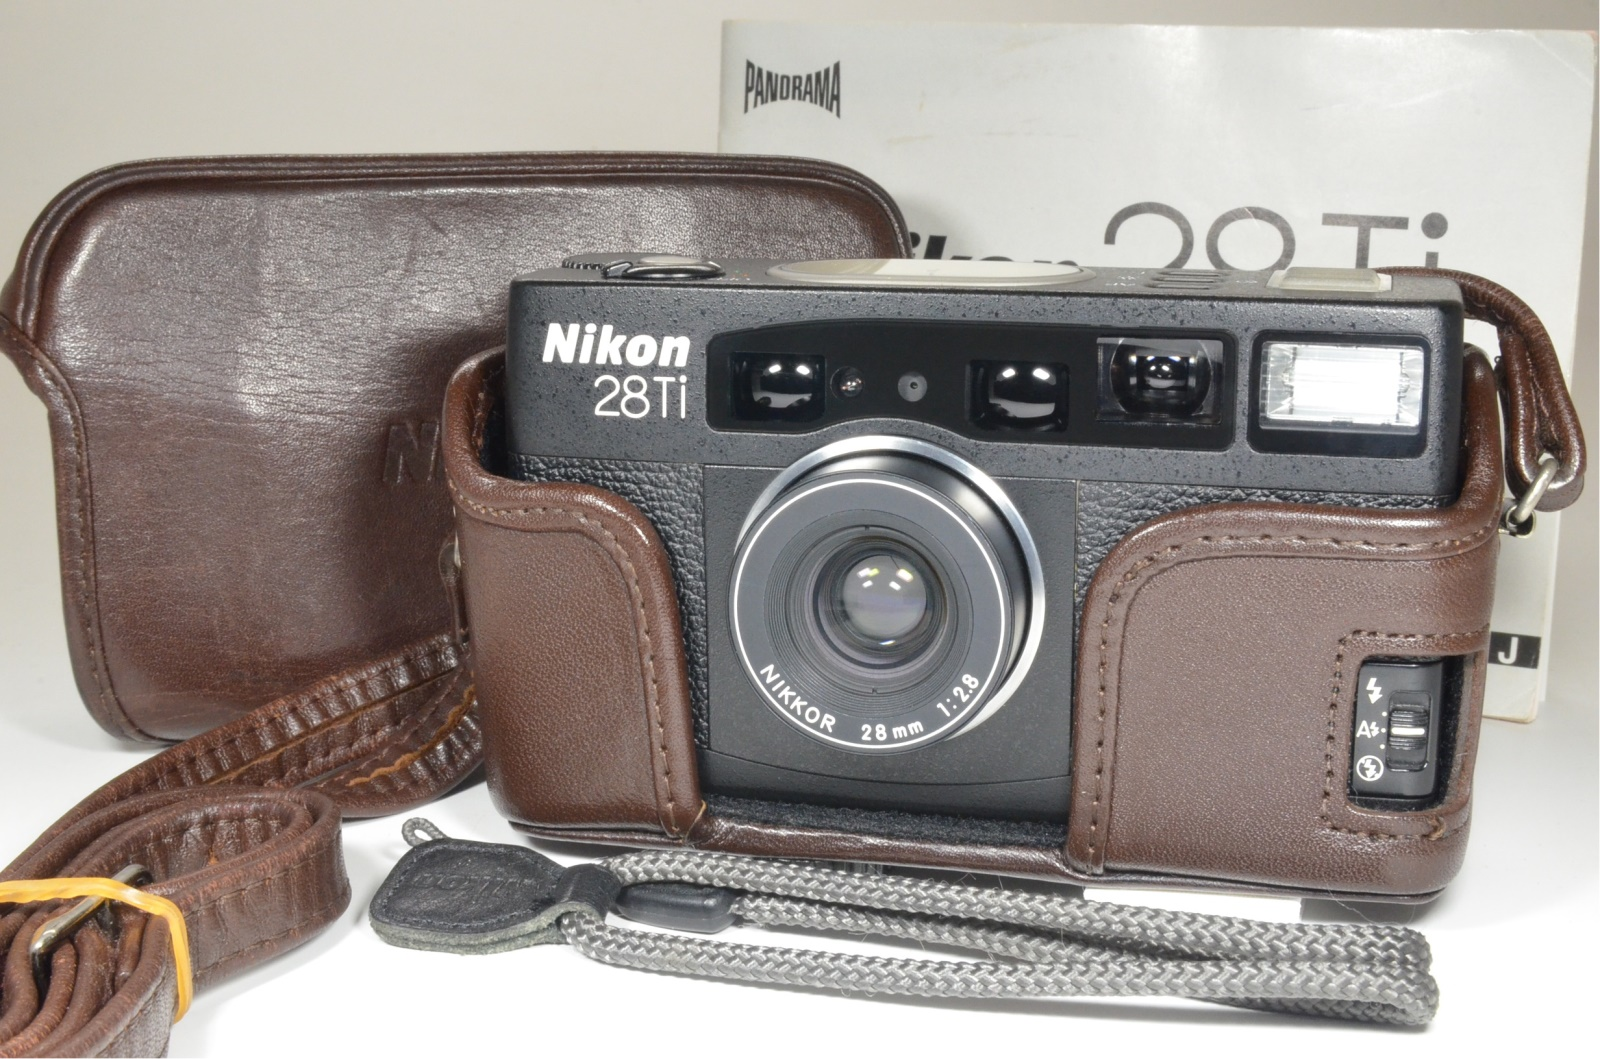 nikon 28ti p&s 35mm film camera lens 28mm f2.8 film tested